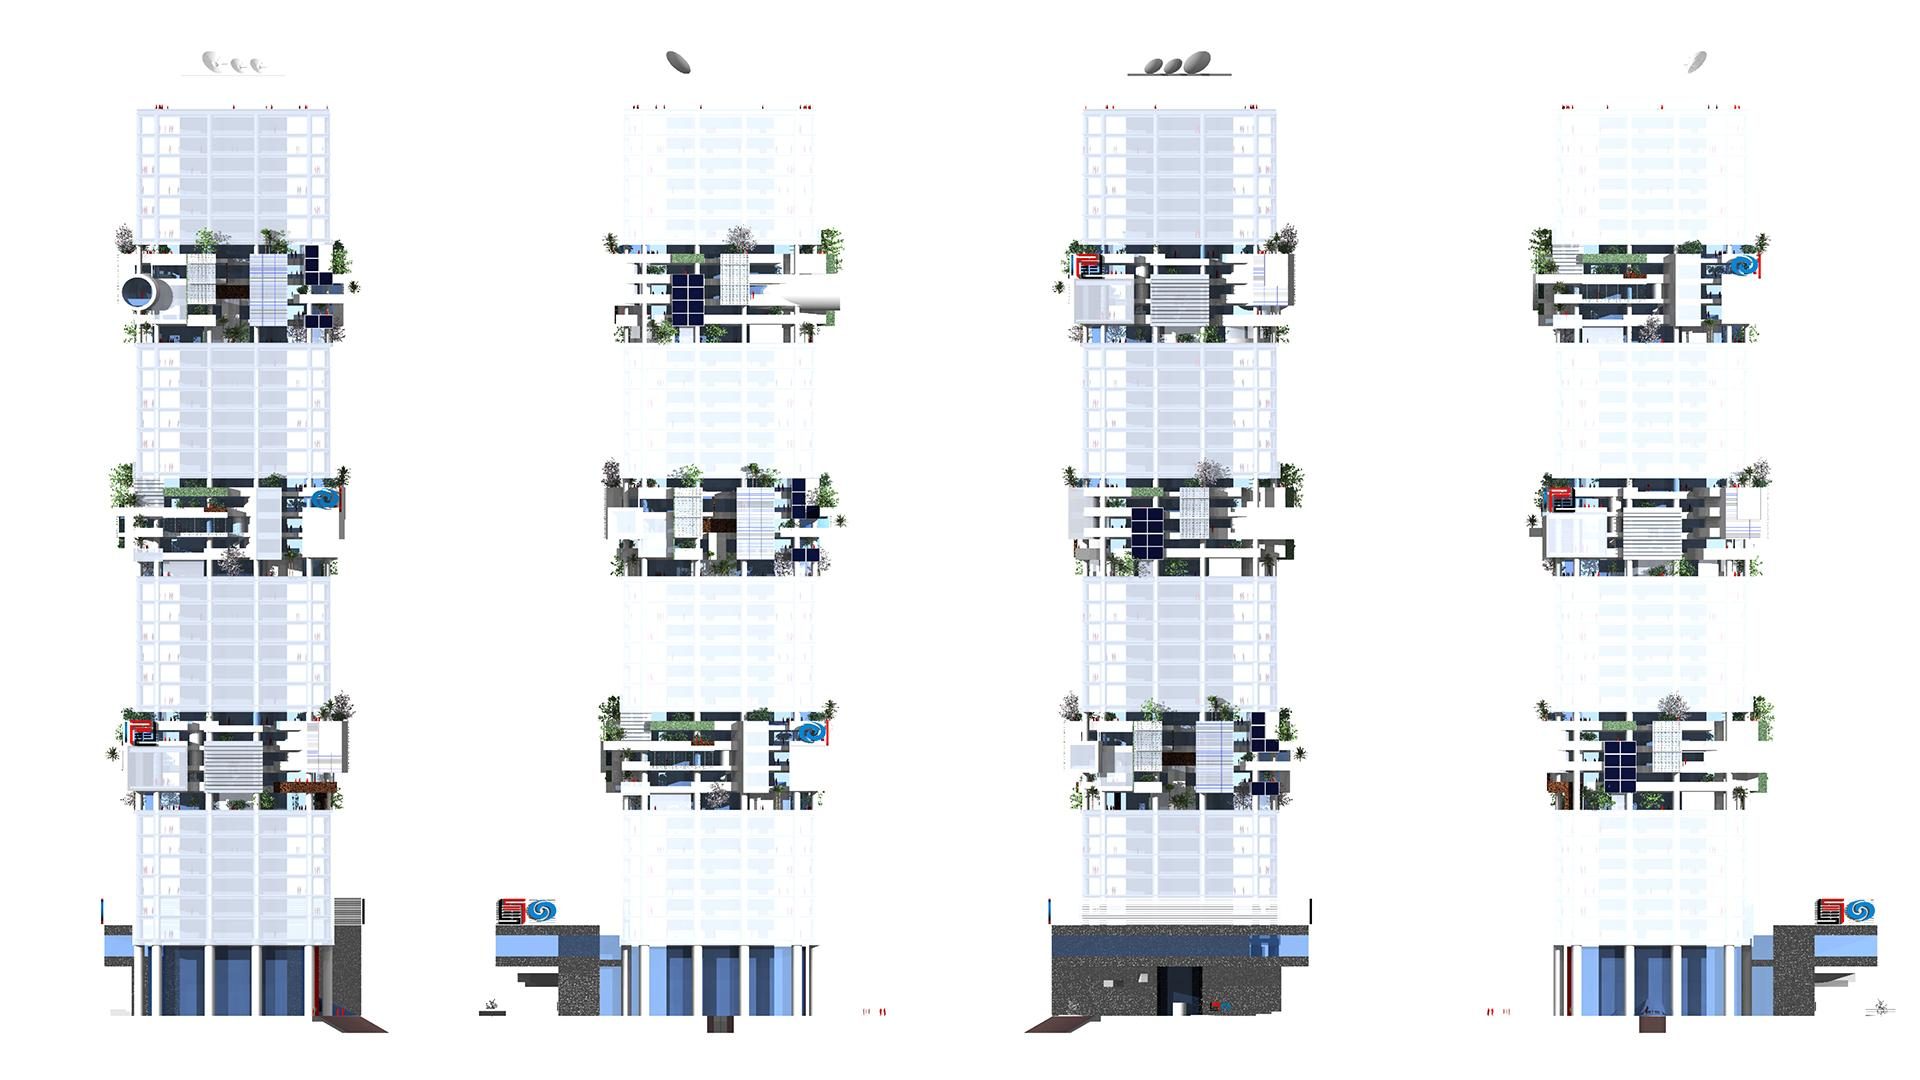 OHA - SBF TOWER 04 - Office For Heuristic Architecture